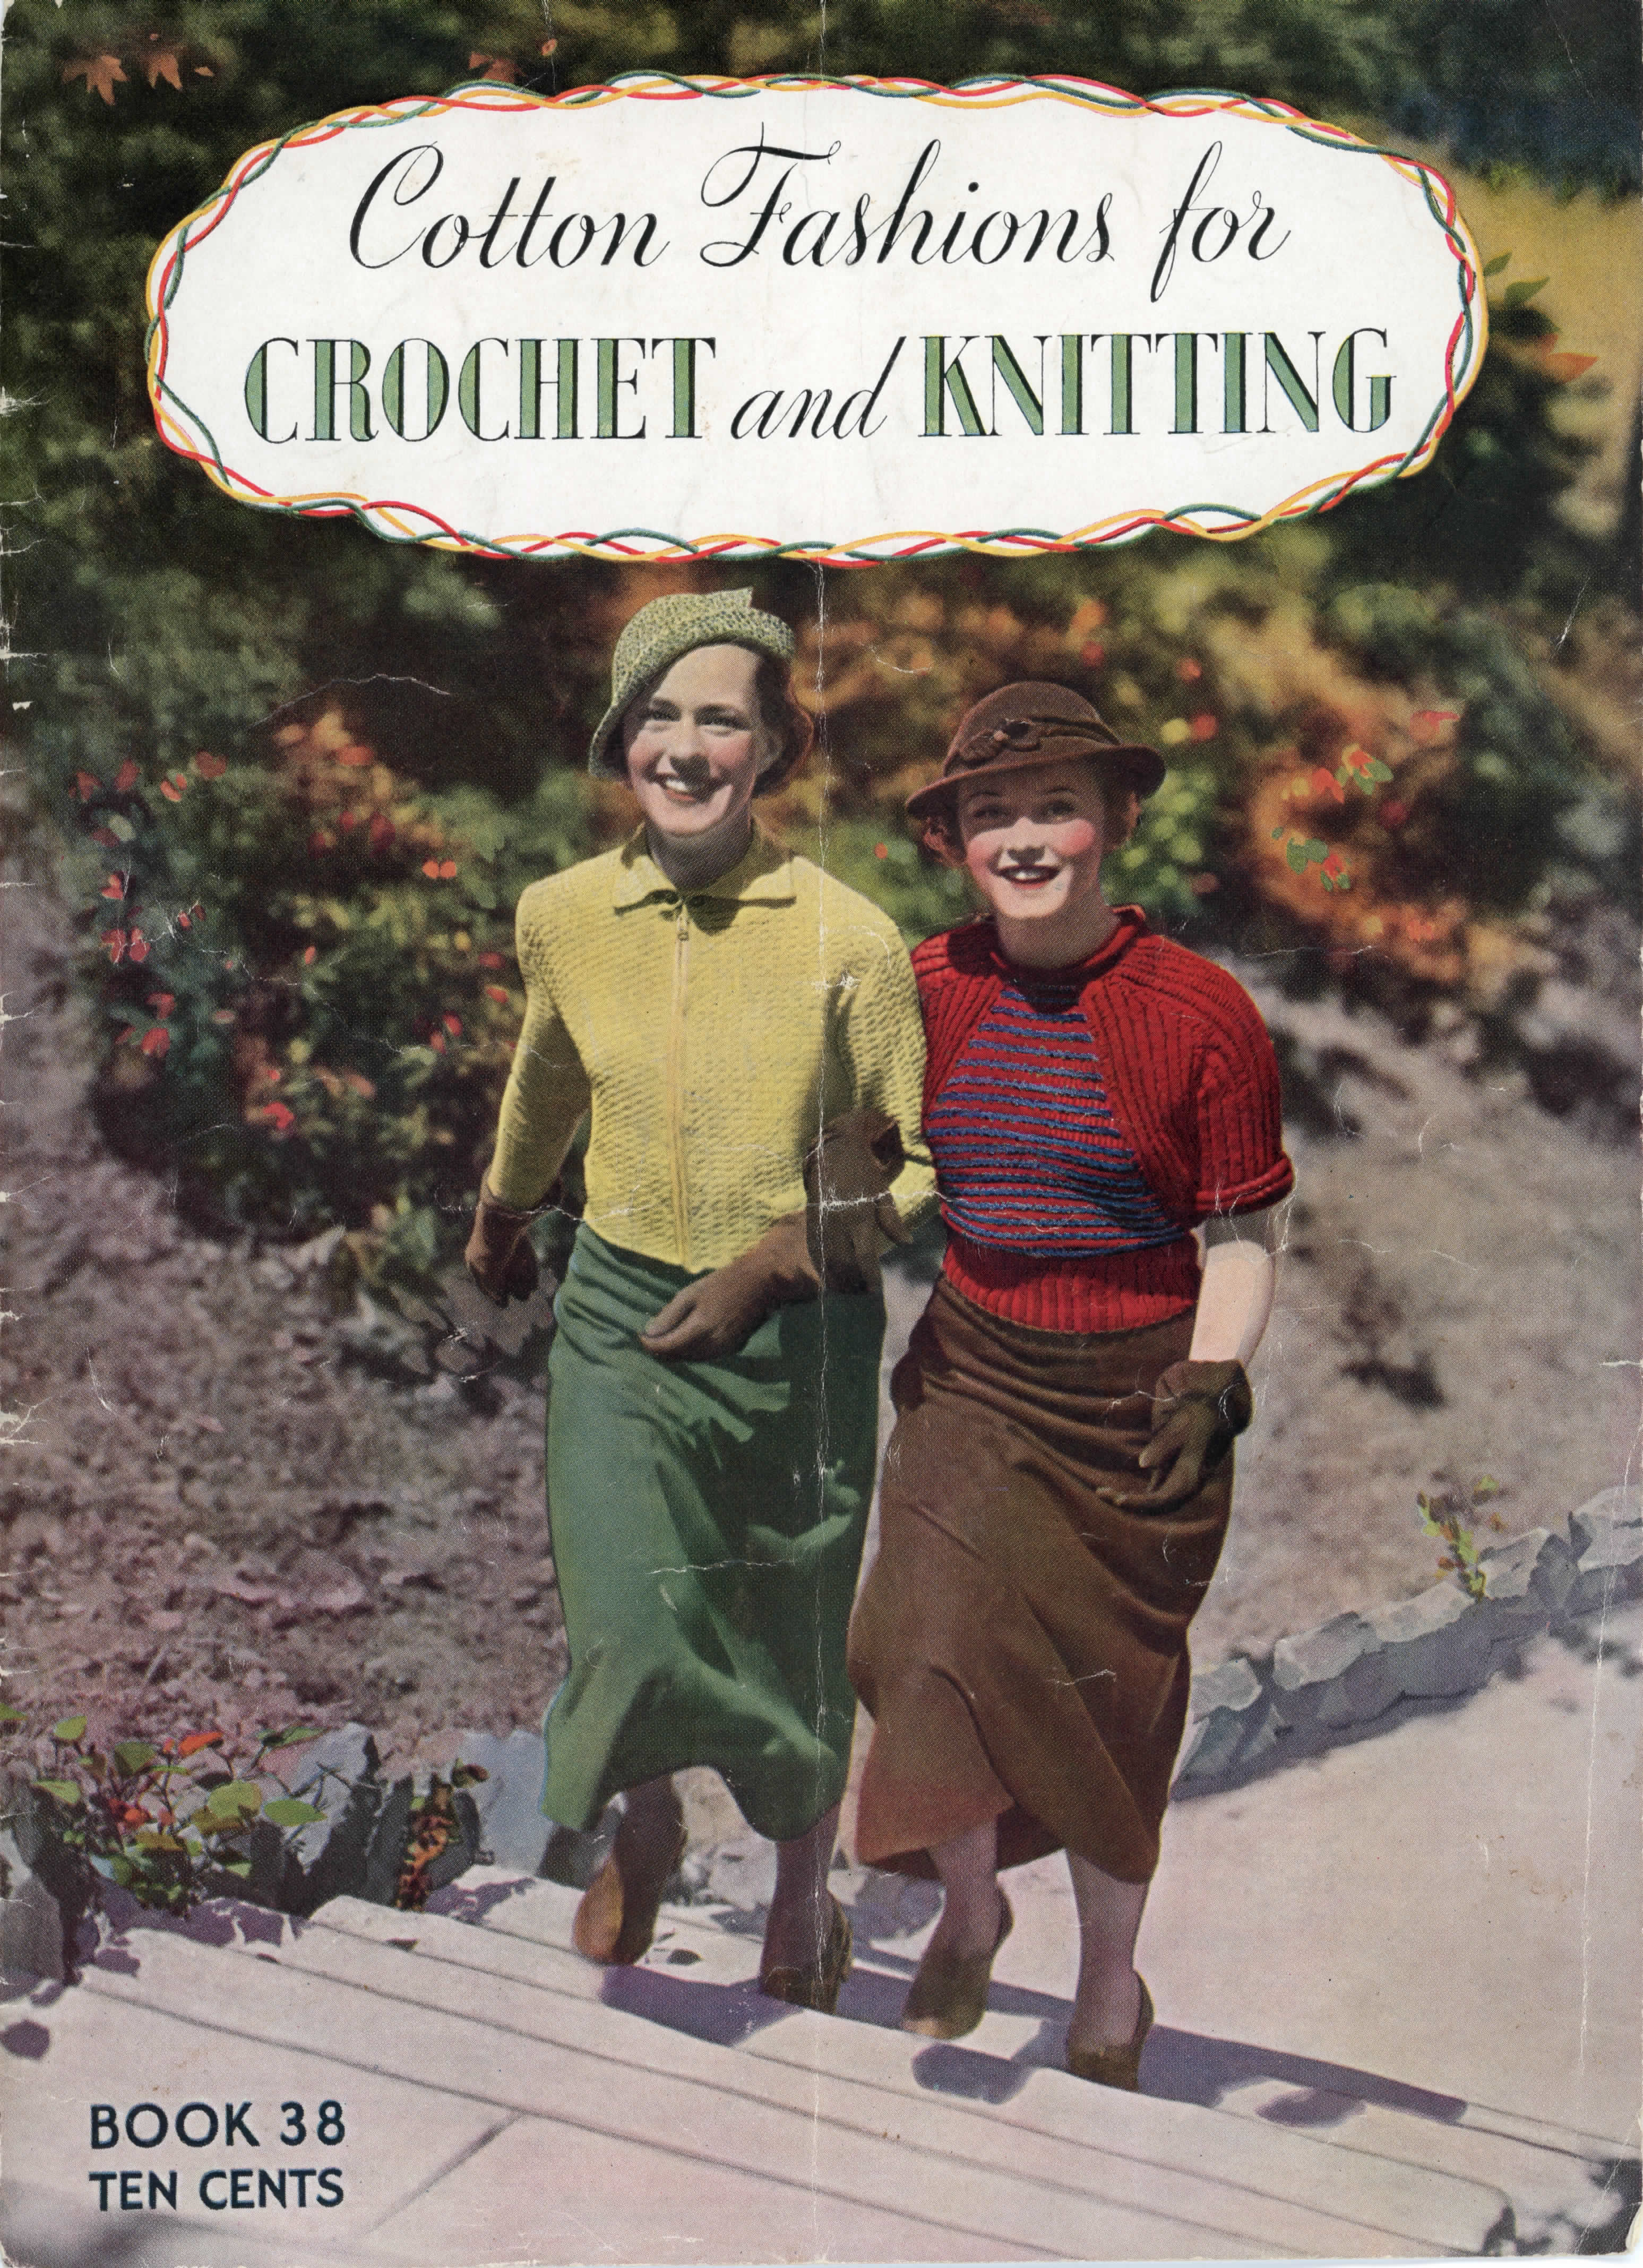 Cotton Fashions for Crochet and Knitting